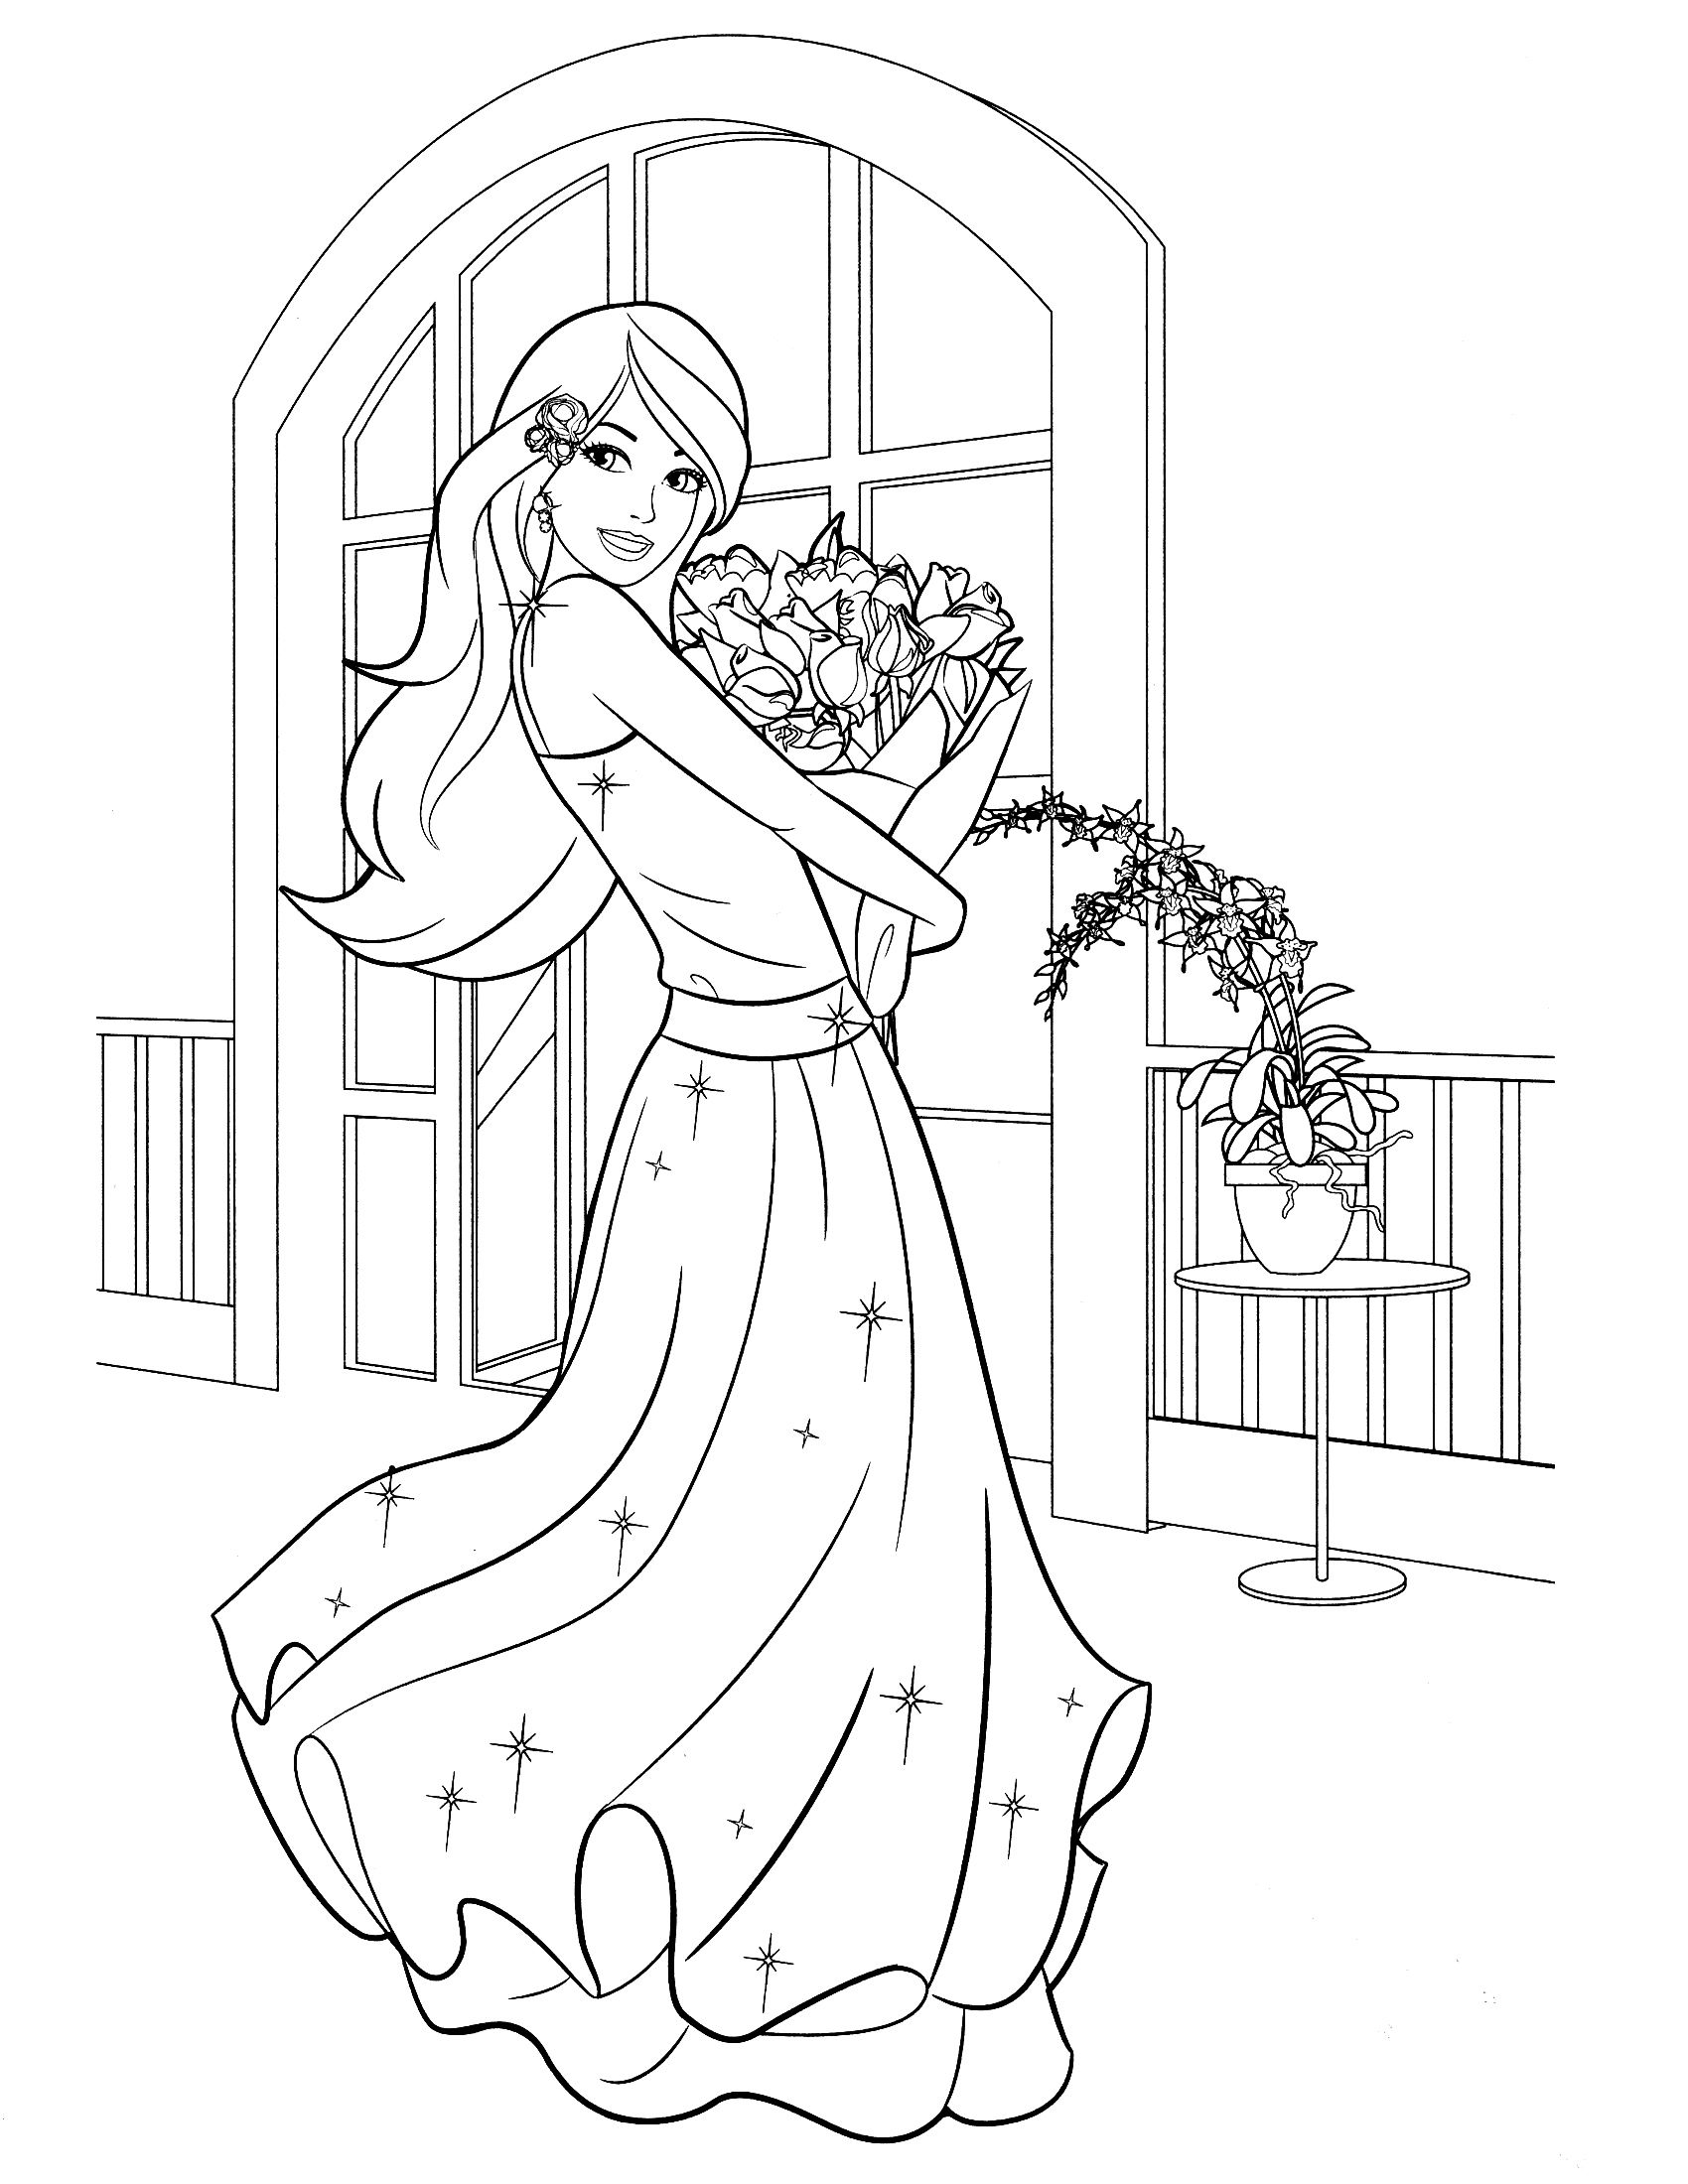 Free printable coloring pages barbie princess - Free Printable Barbie Coloring Pages More